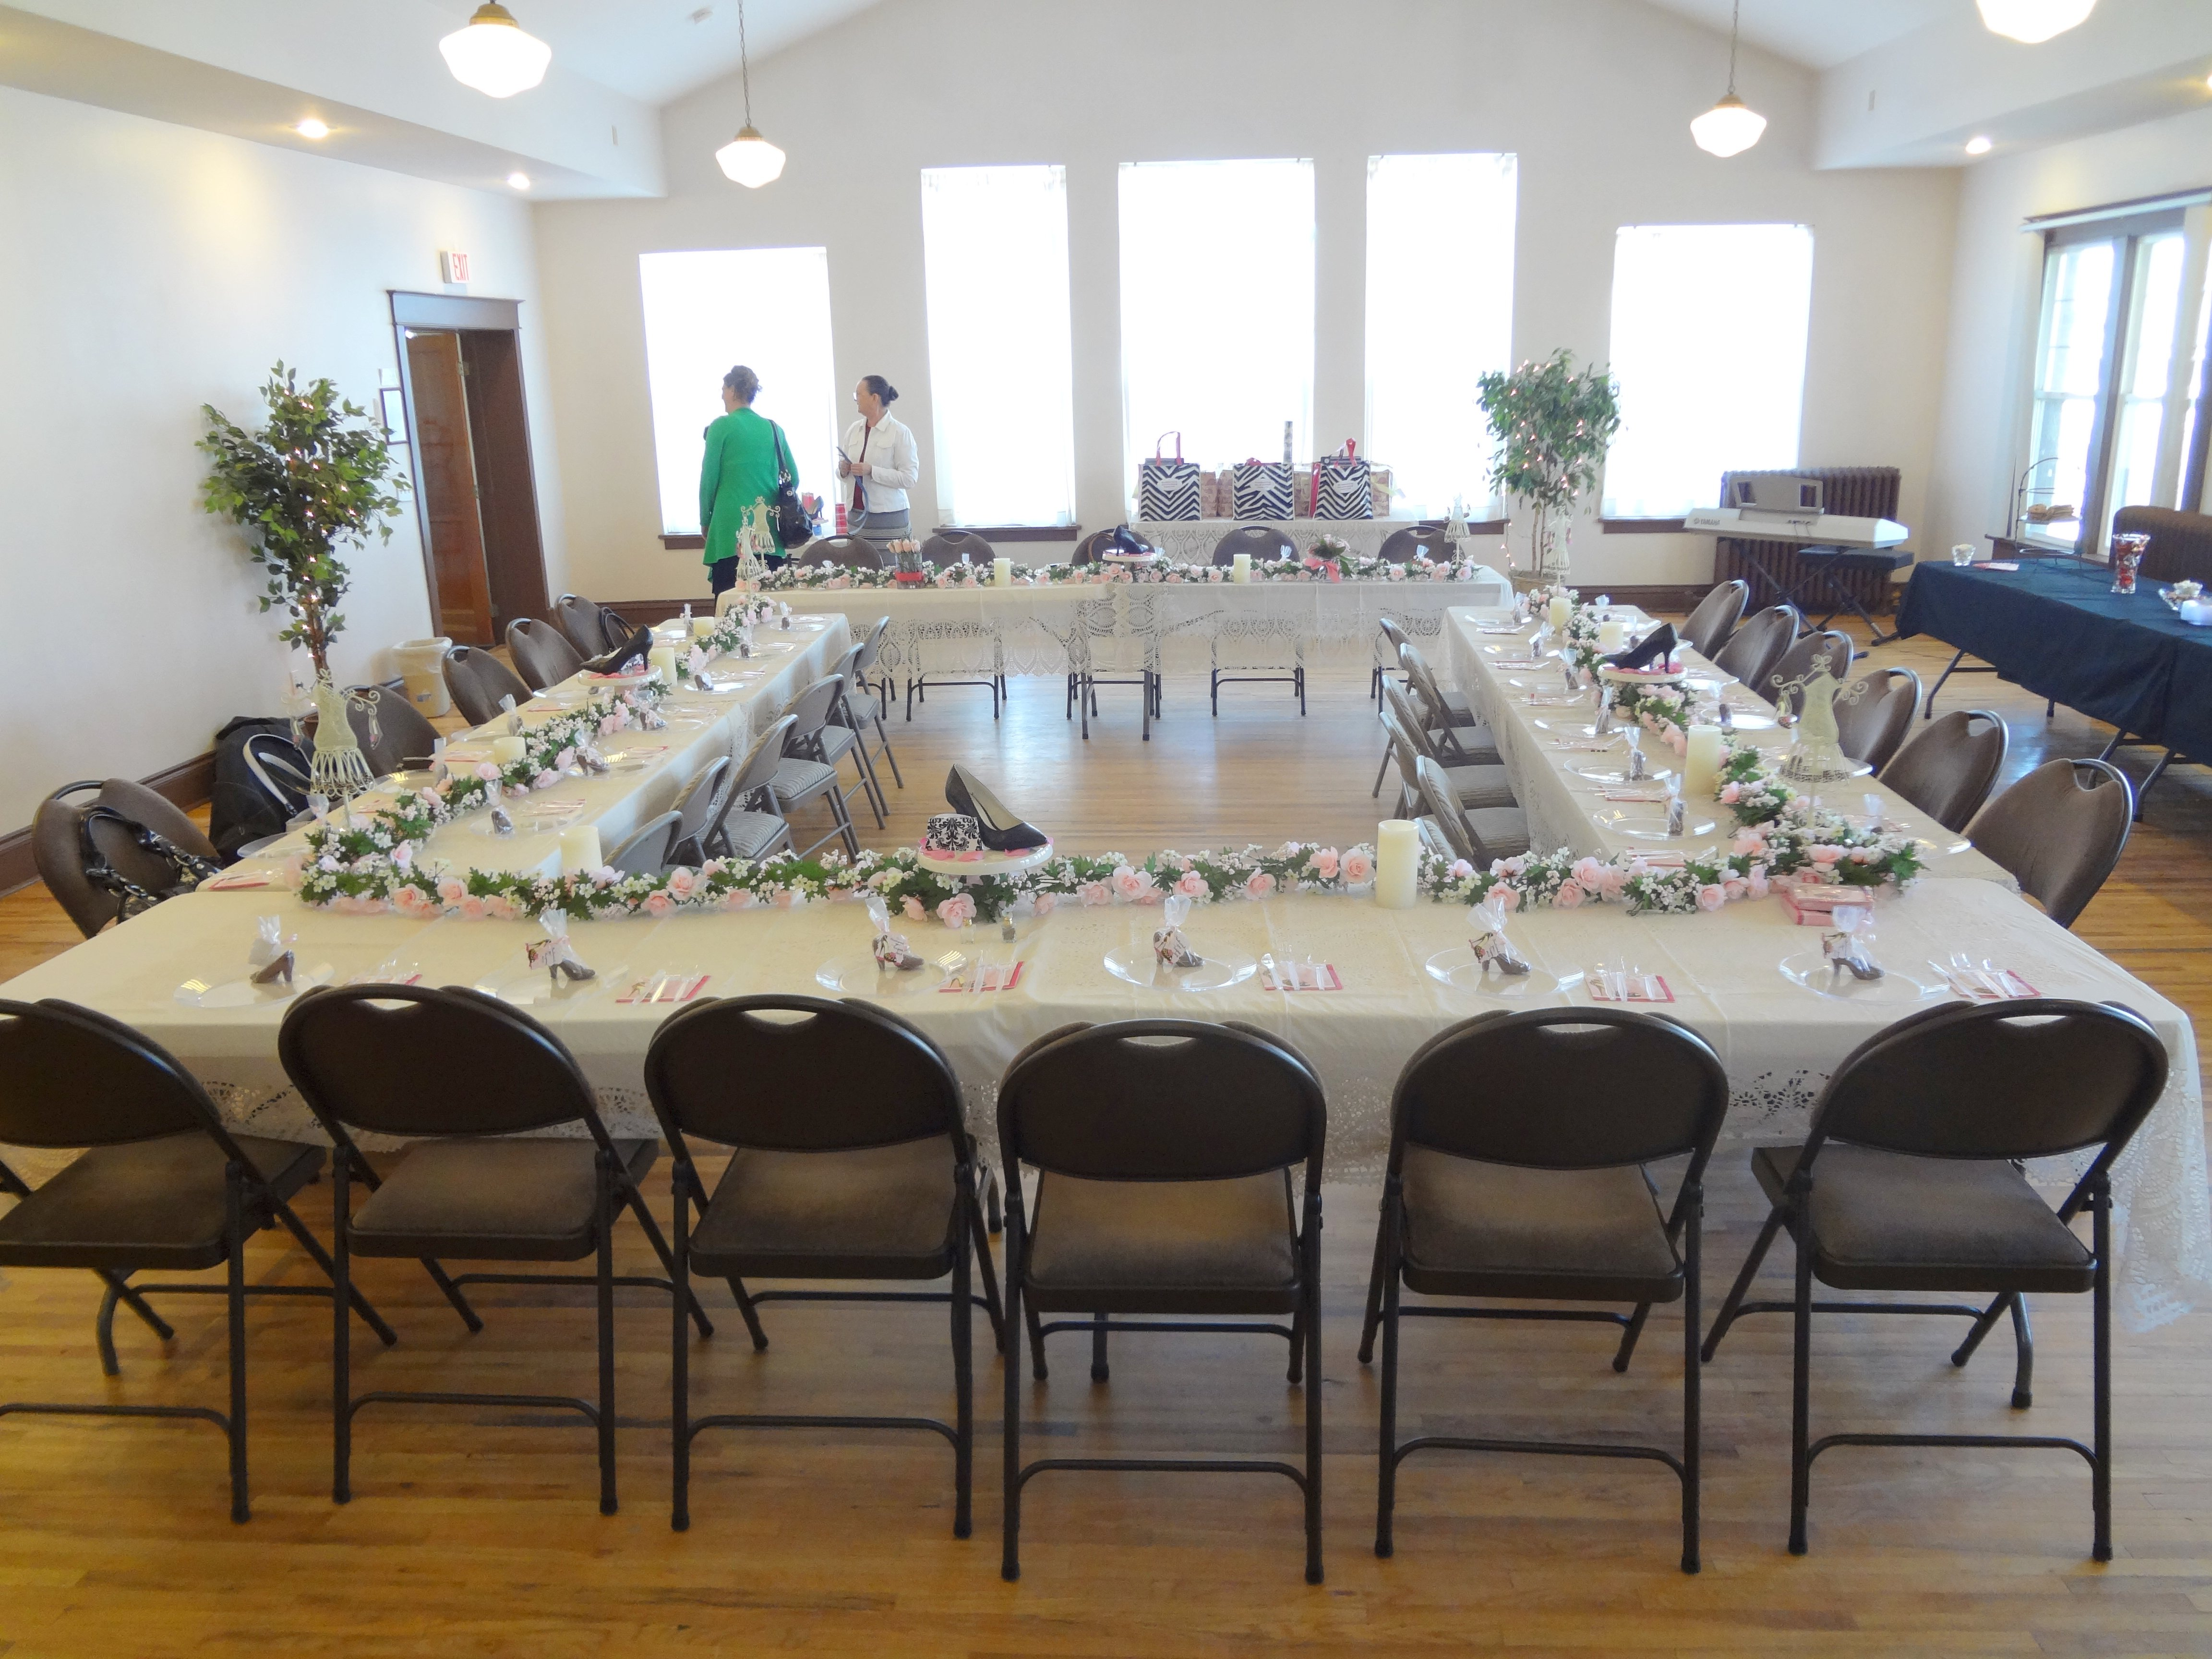 Church Ladies Luncheon for 35 guests at Woman's Club of Spokane